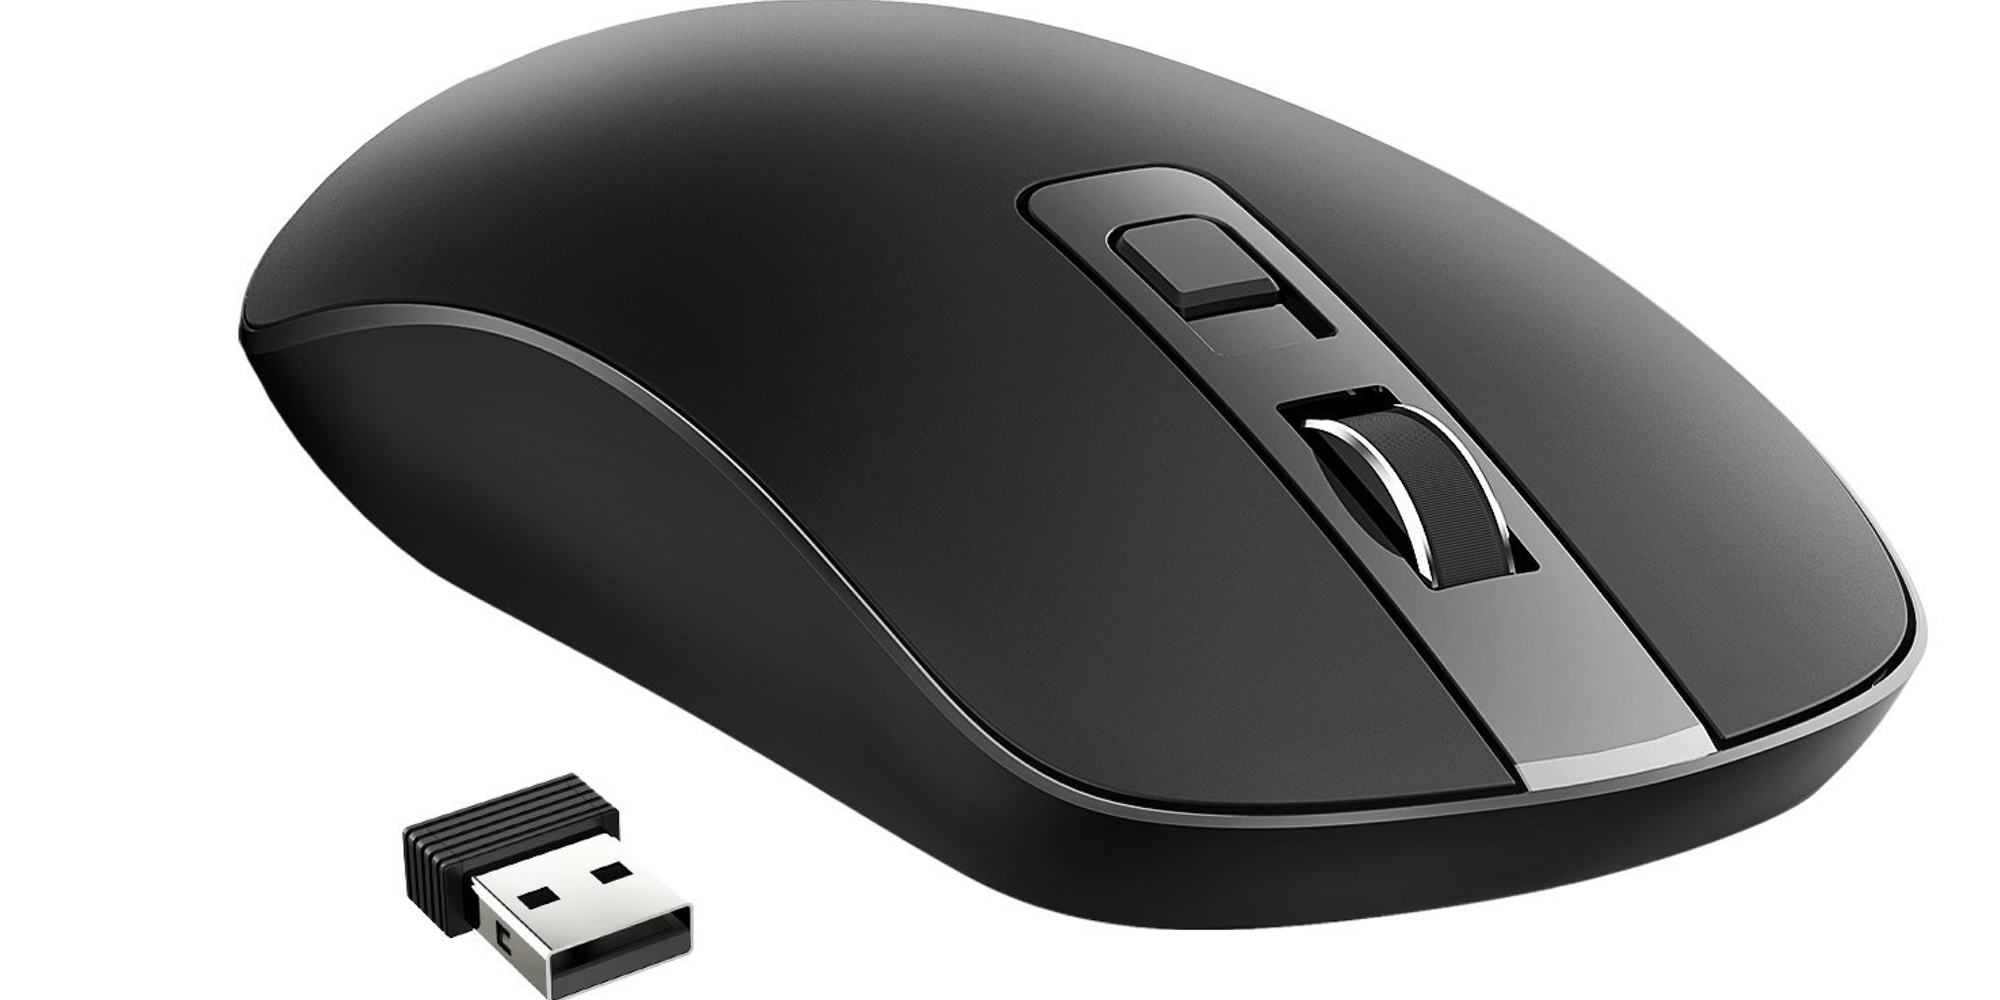 VicTsing's ultra-quiet 4-Button Slim Wireless Mouse is just $6 Prime